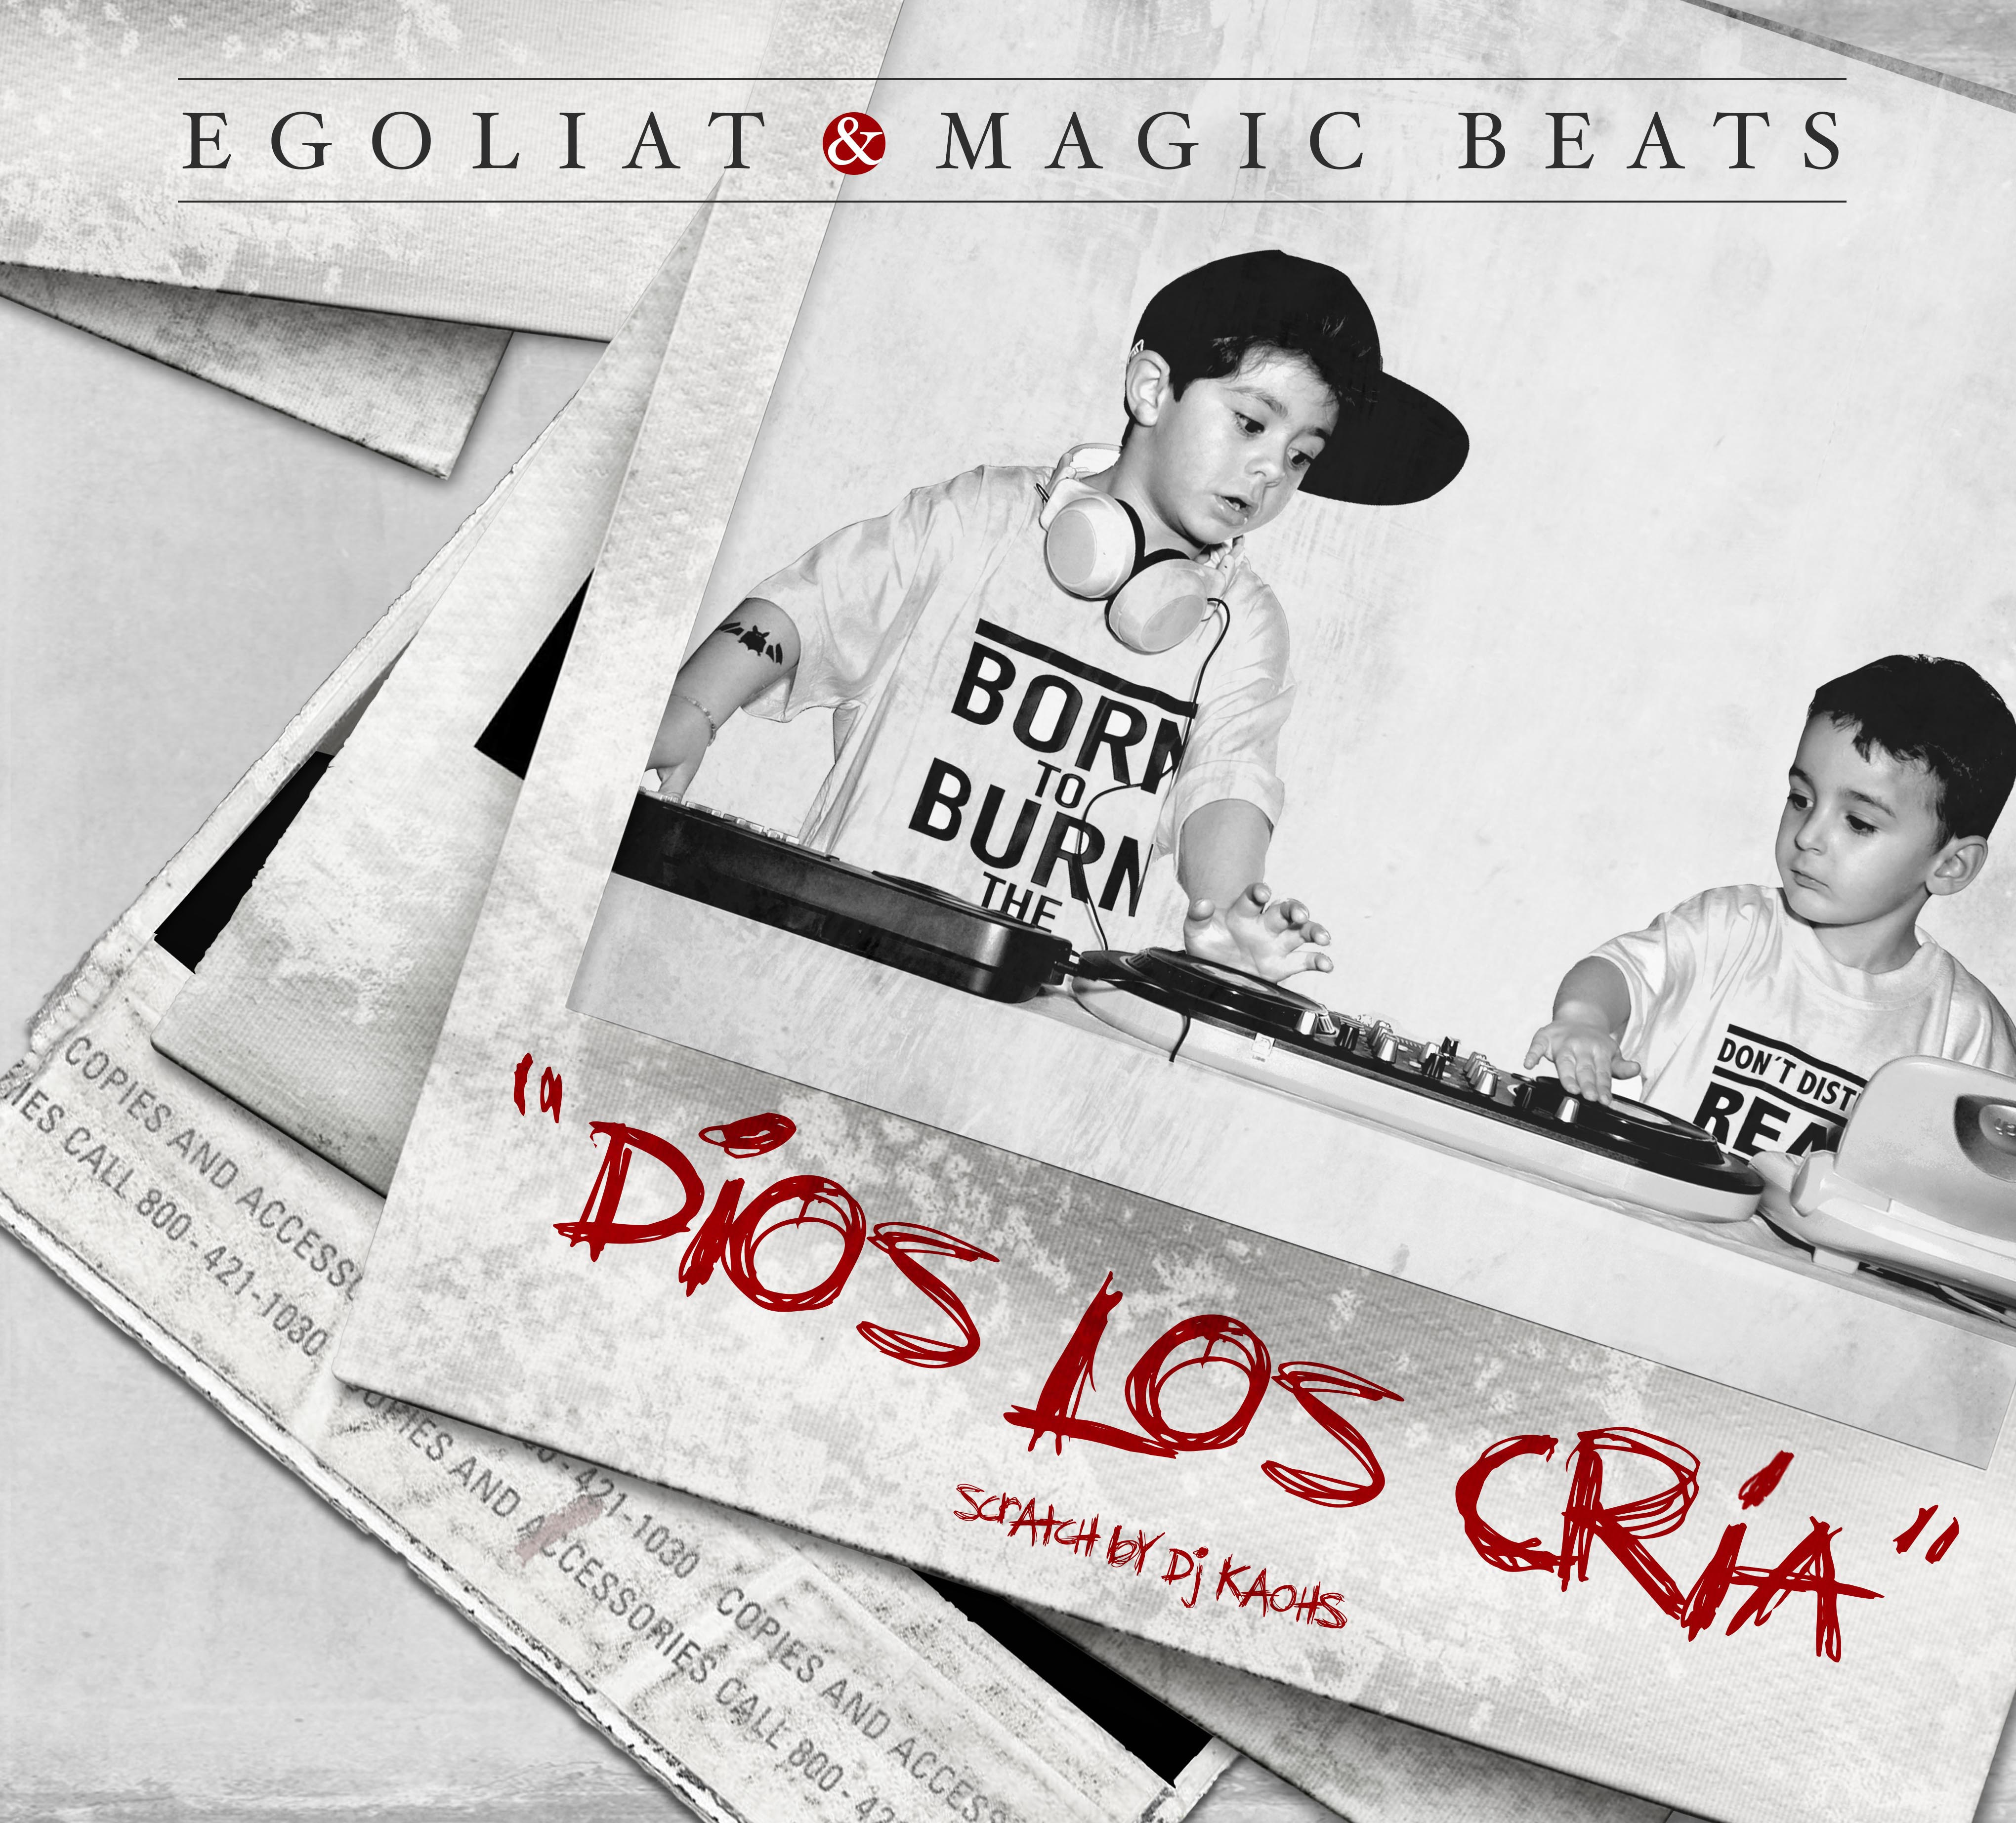 Egoliat___magic_beats_-_dios_los_cr_a